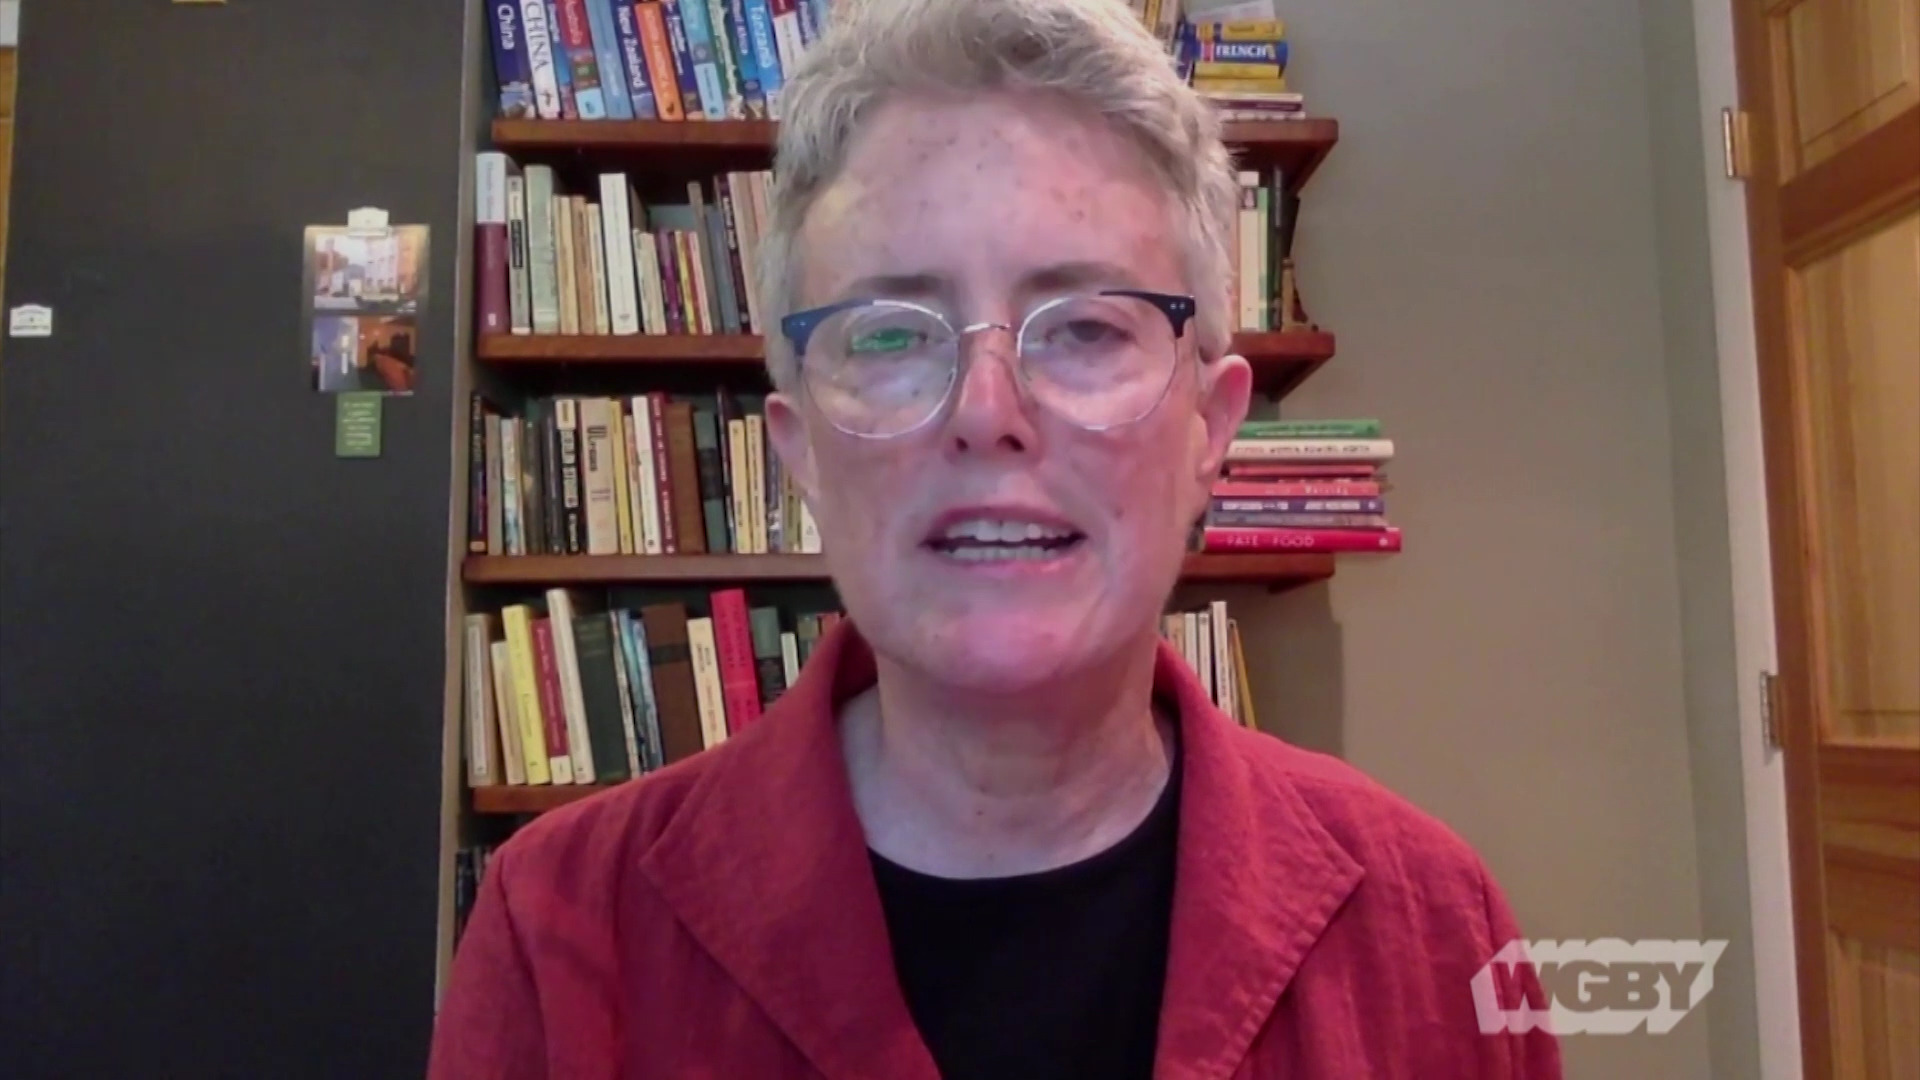 UMass Center for Employment Equity's Prof. Lee Badgett talks about the Supreme Court ruling that states LGBTQ workers are protected by the Civil Rights Act.